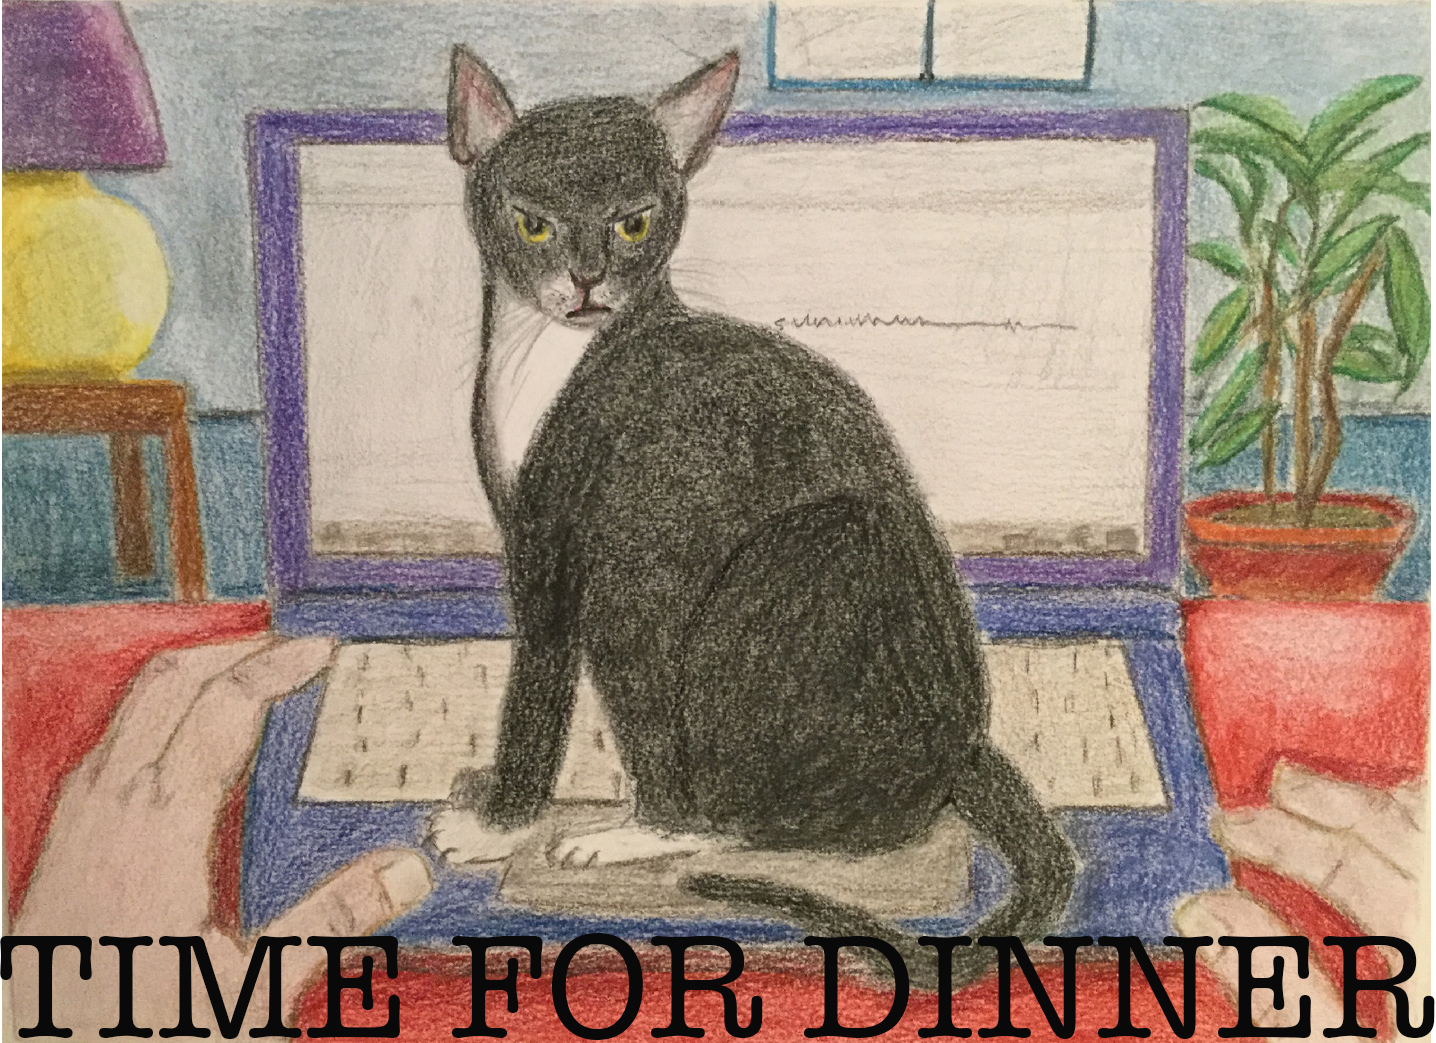 Drawing of a cat on a laptop, looking annoyed.